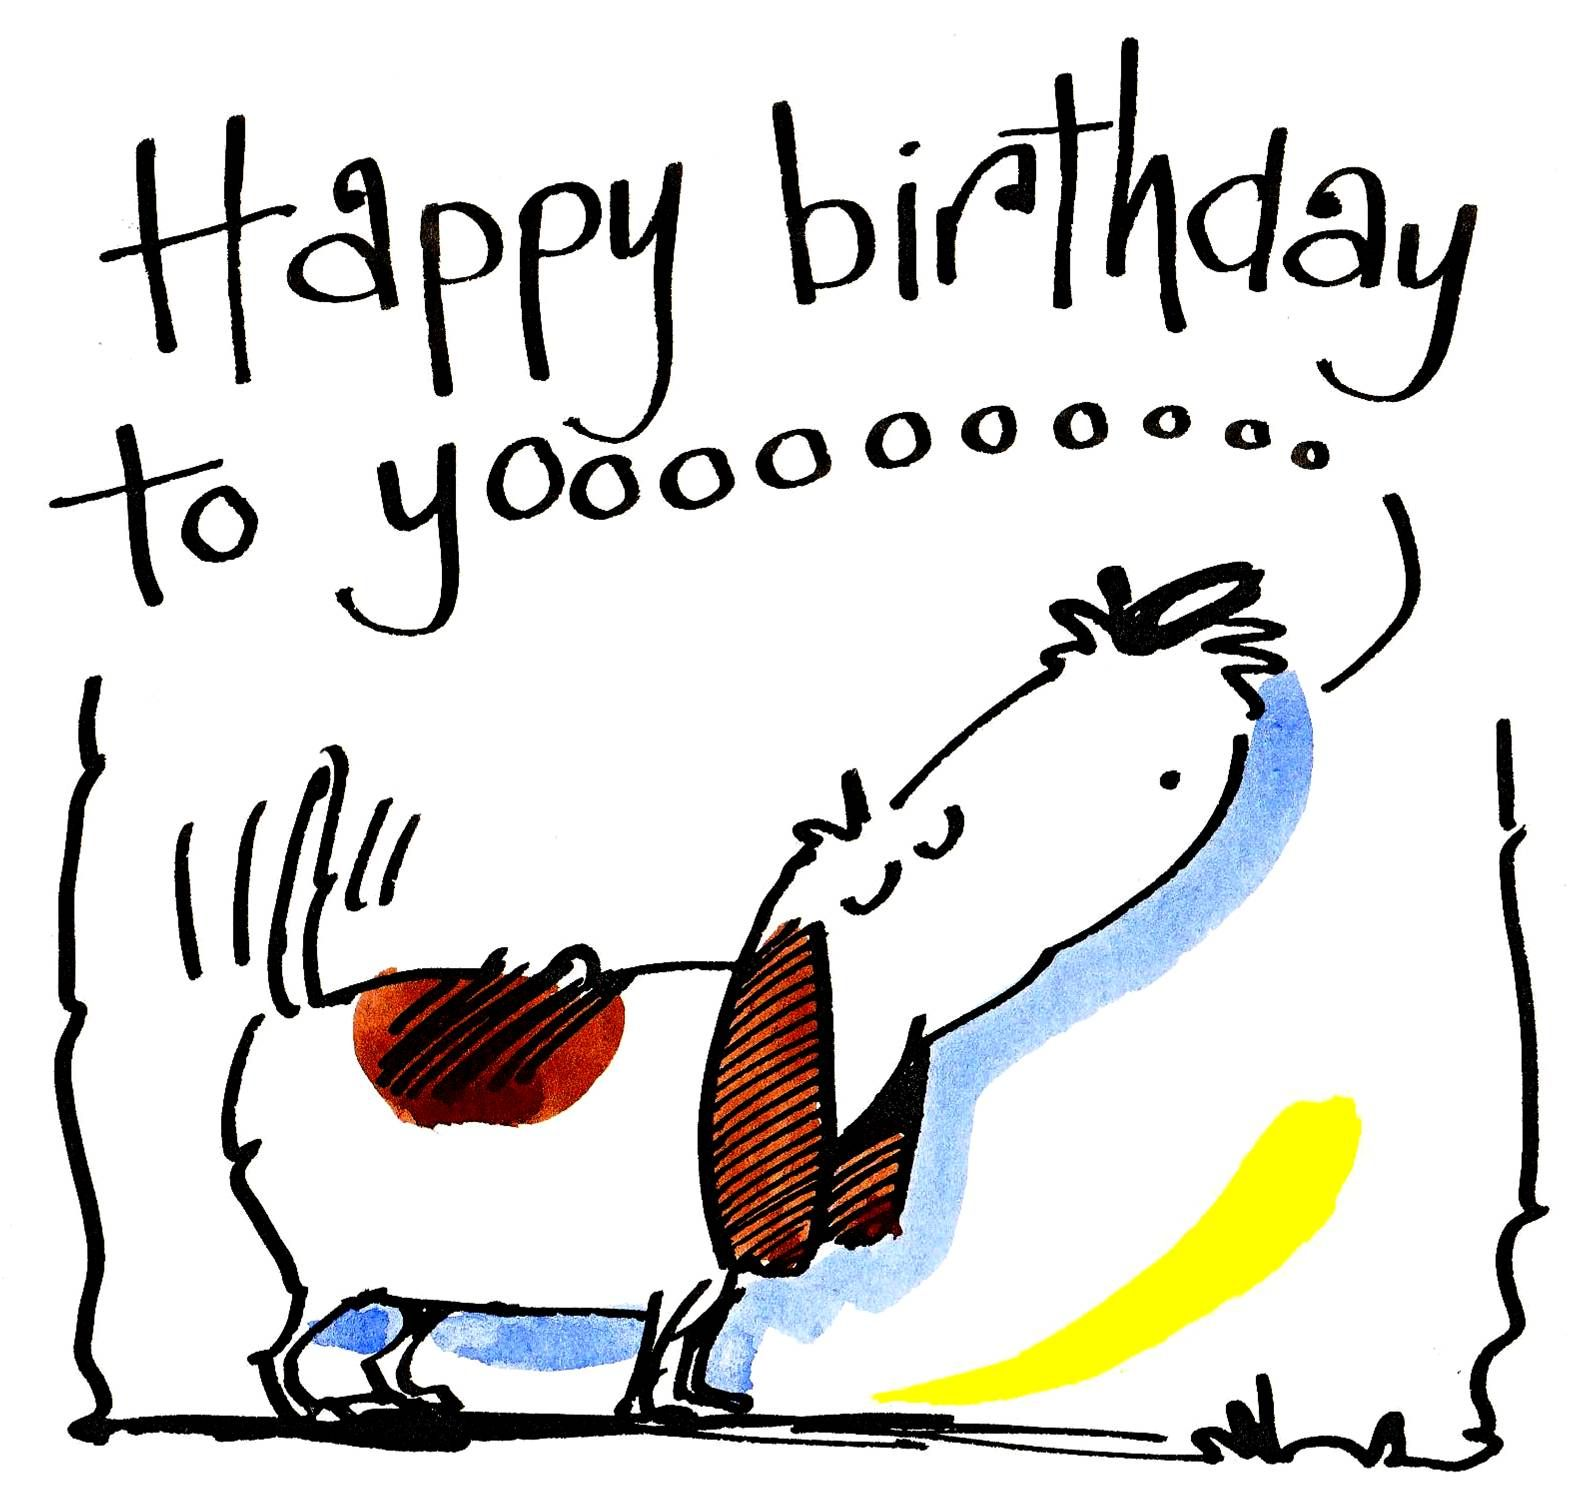 Birthday Card with cartoon  dog howling Happy Birthday To Yoooooo